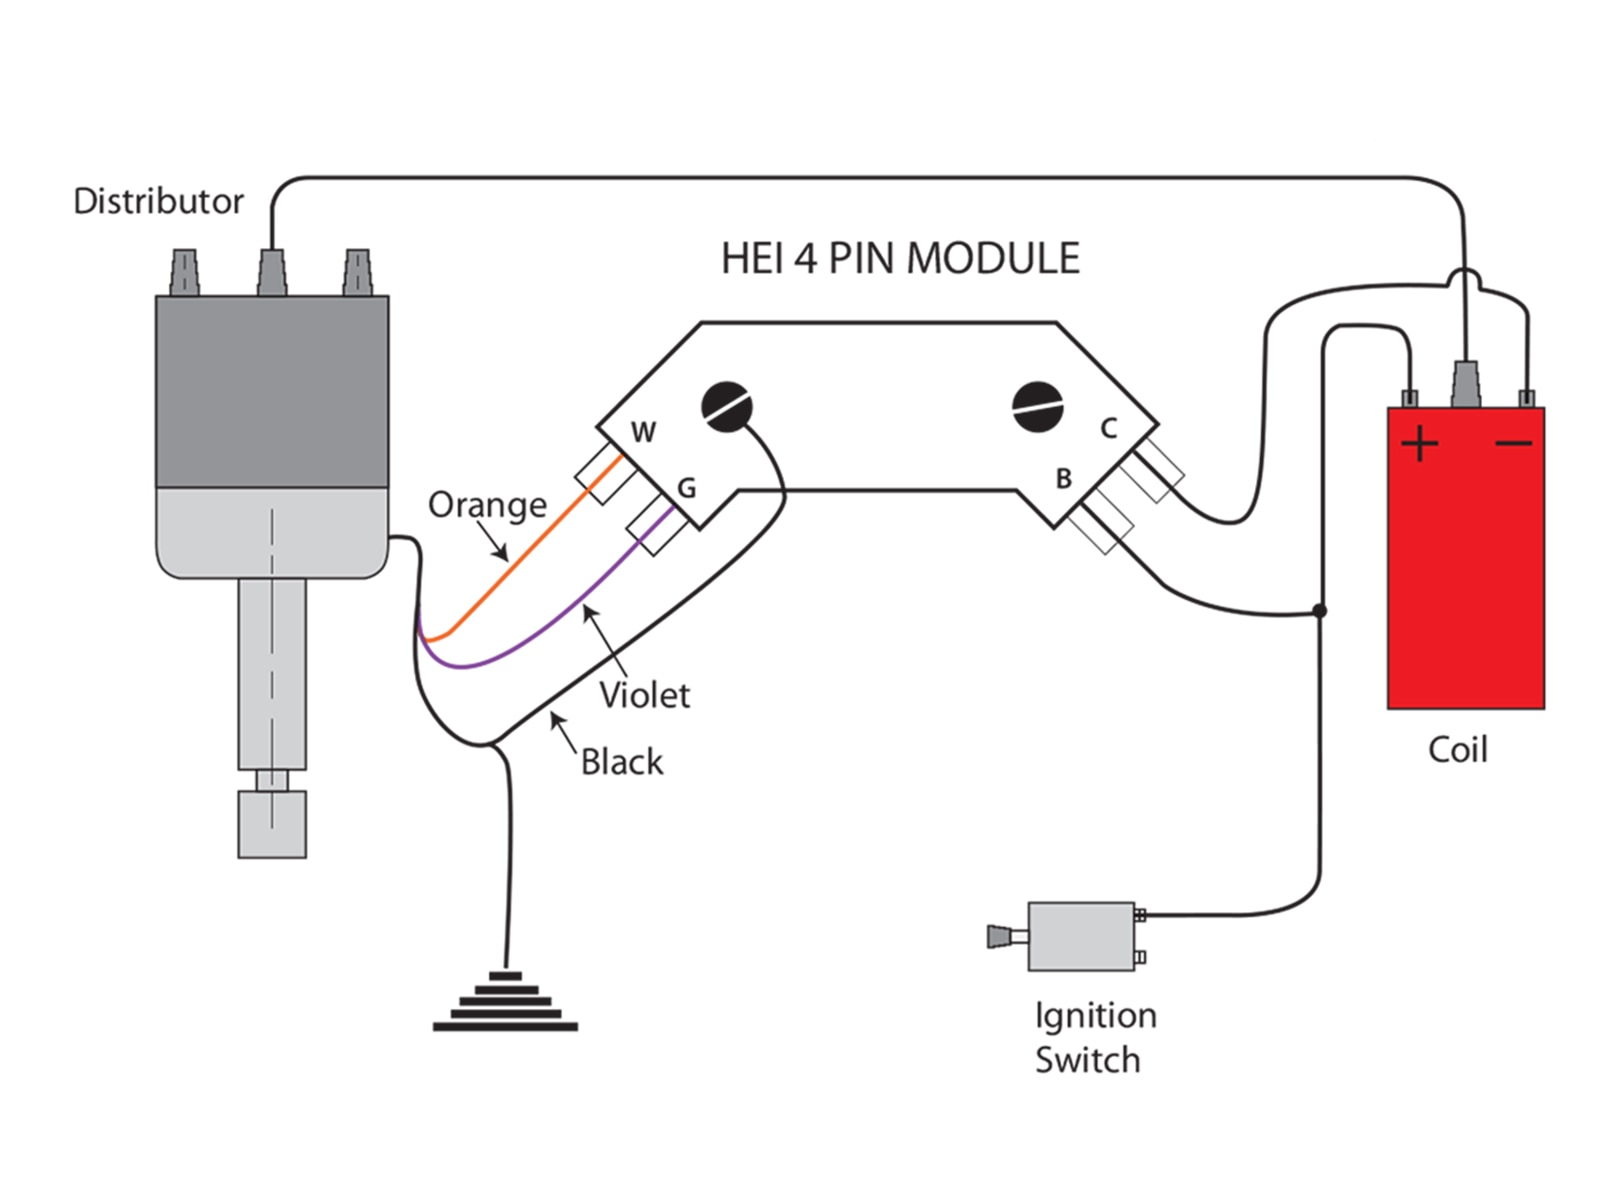 gm hei 4 pin ignition module wiring diagram